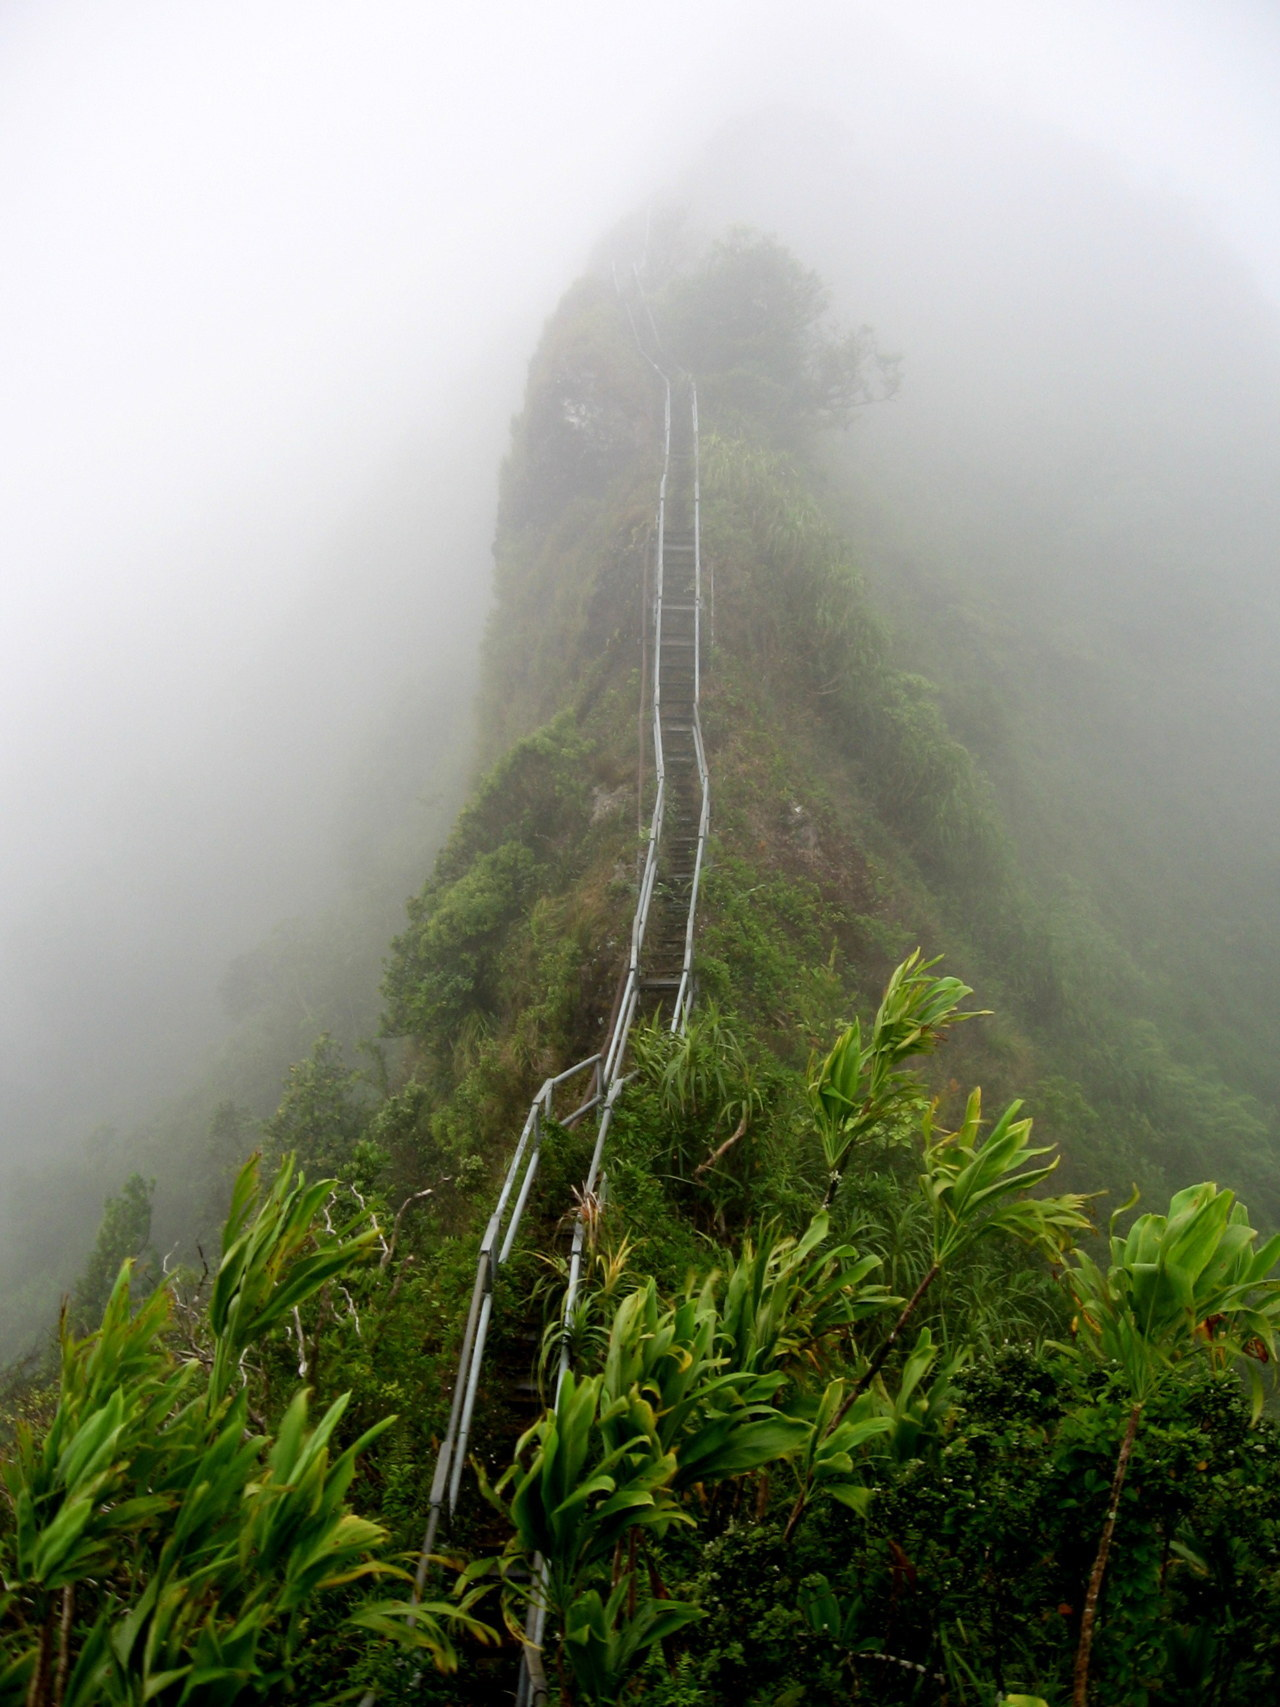 scarydads:  grvnge:  STAIRWAY TO HEAVEN IN HAWAII IS NO LONGER OPEN AND I'M SAD BECAUSE I LIVE IN HAWAII AND I NEVER GOT TO HIKE THIS.  wait it's closed forever whAT